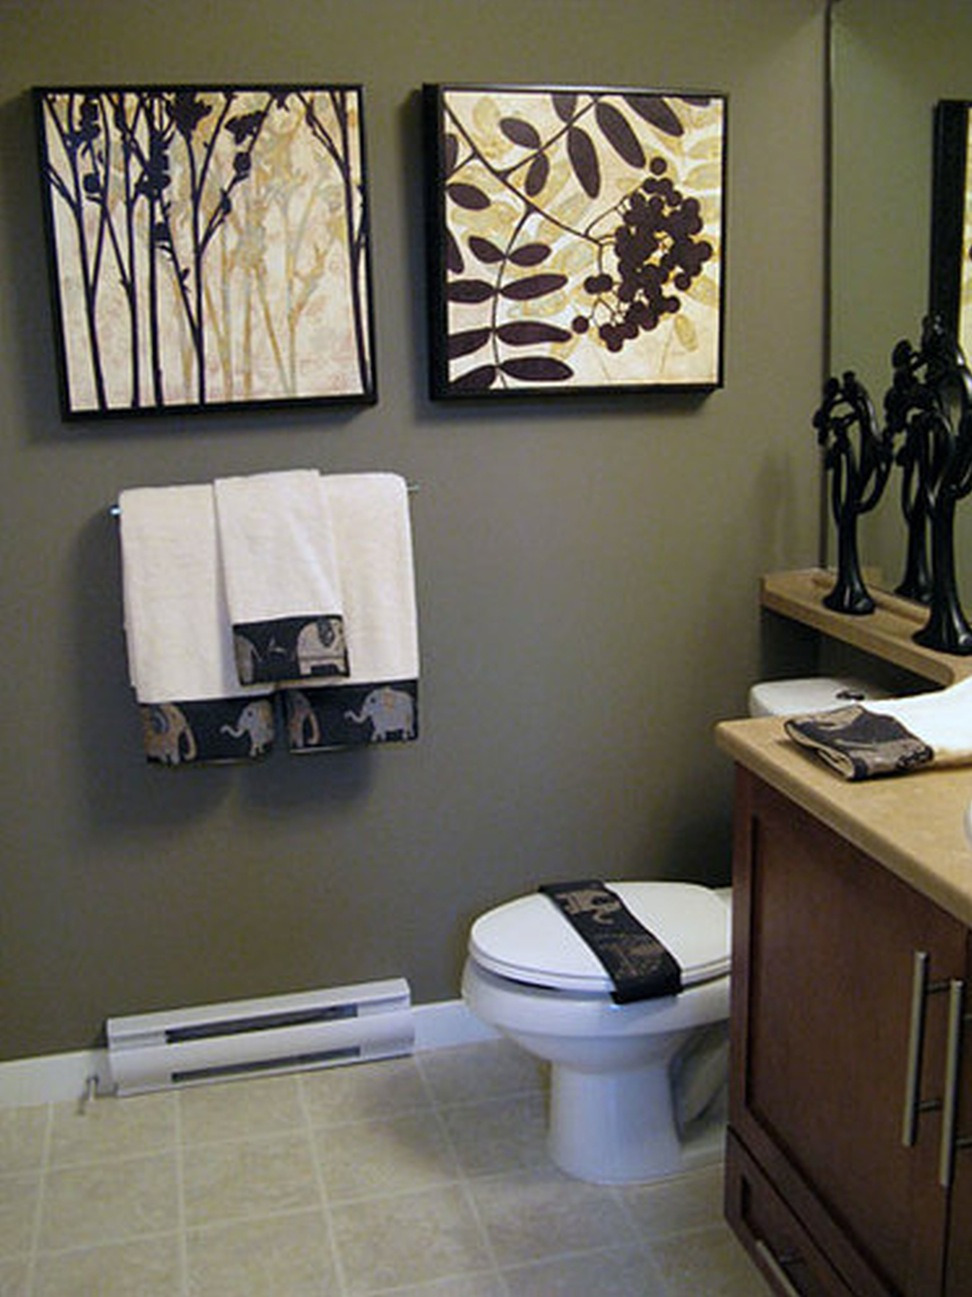 Office Bathroom Decorating Ideas Beautiful Modern Bathroom with Statement Wallpaper 0 Small Ideasrating